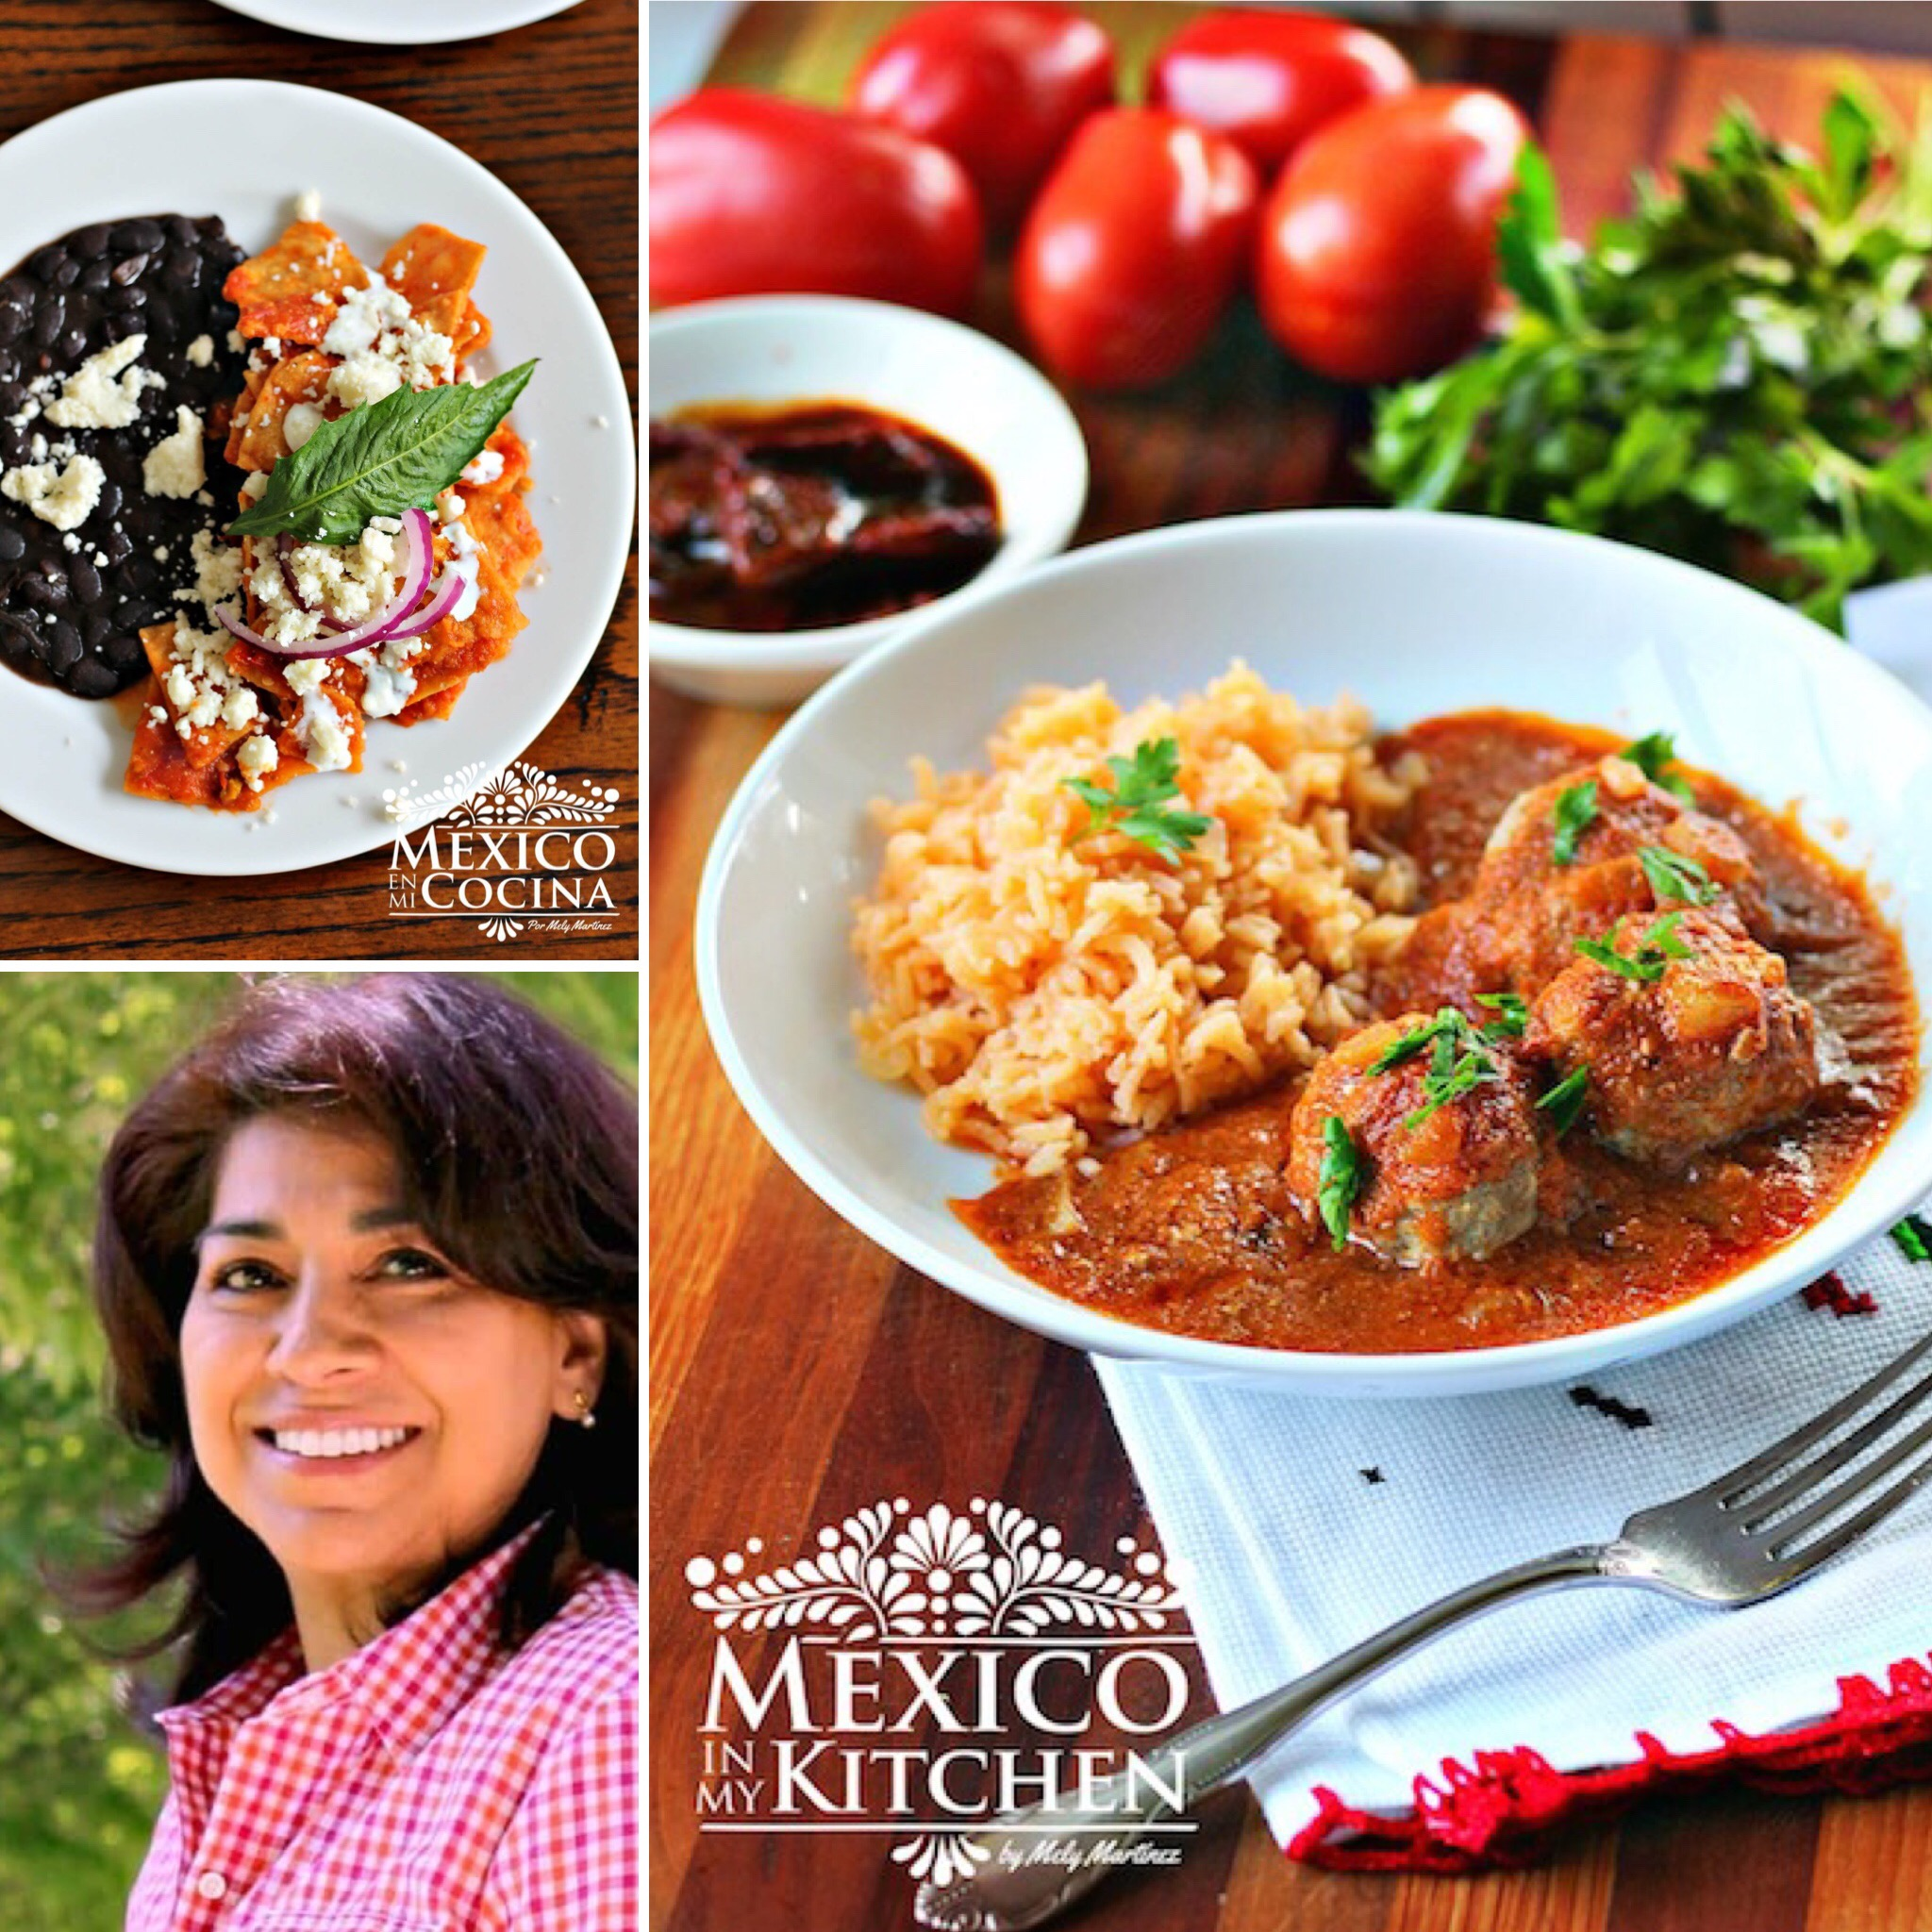 Mely Martinez and her  delicious chilaquiles  and  abondigas!